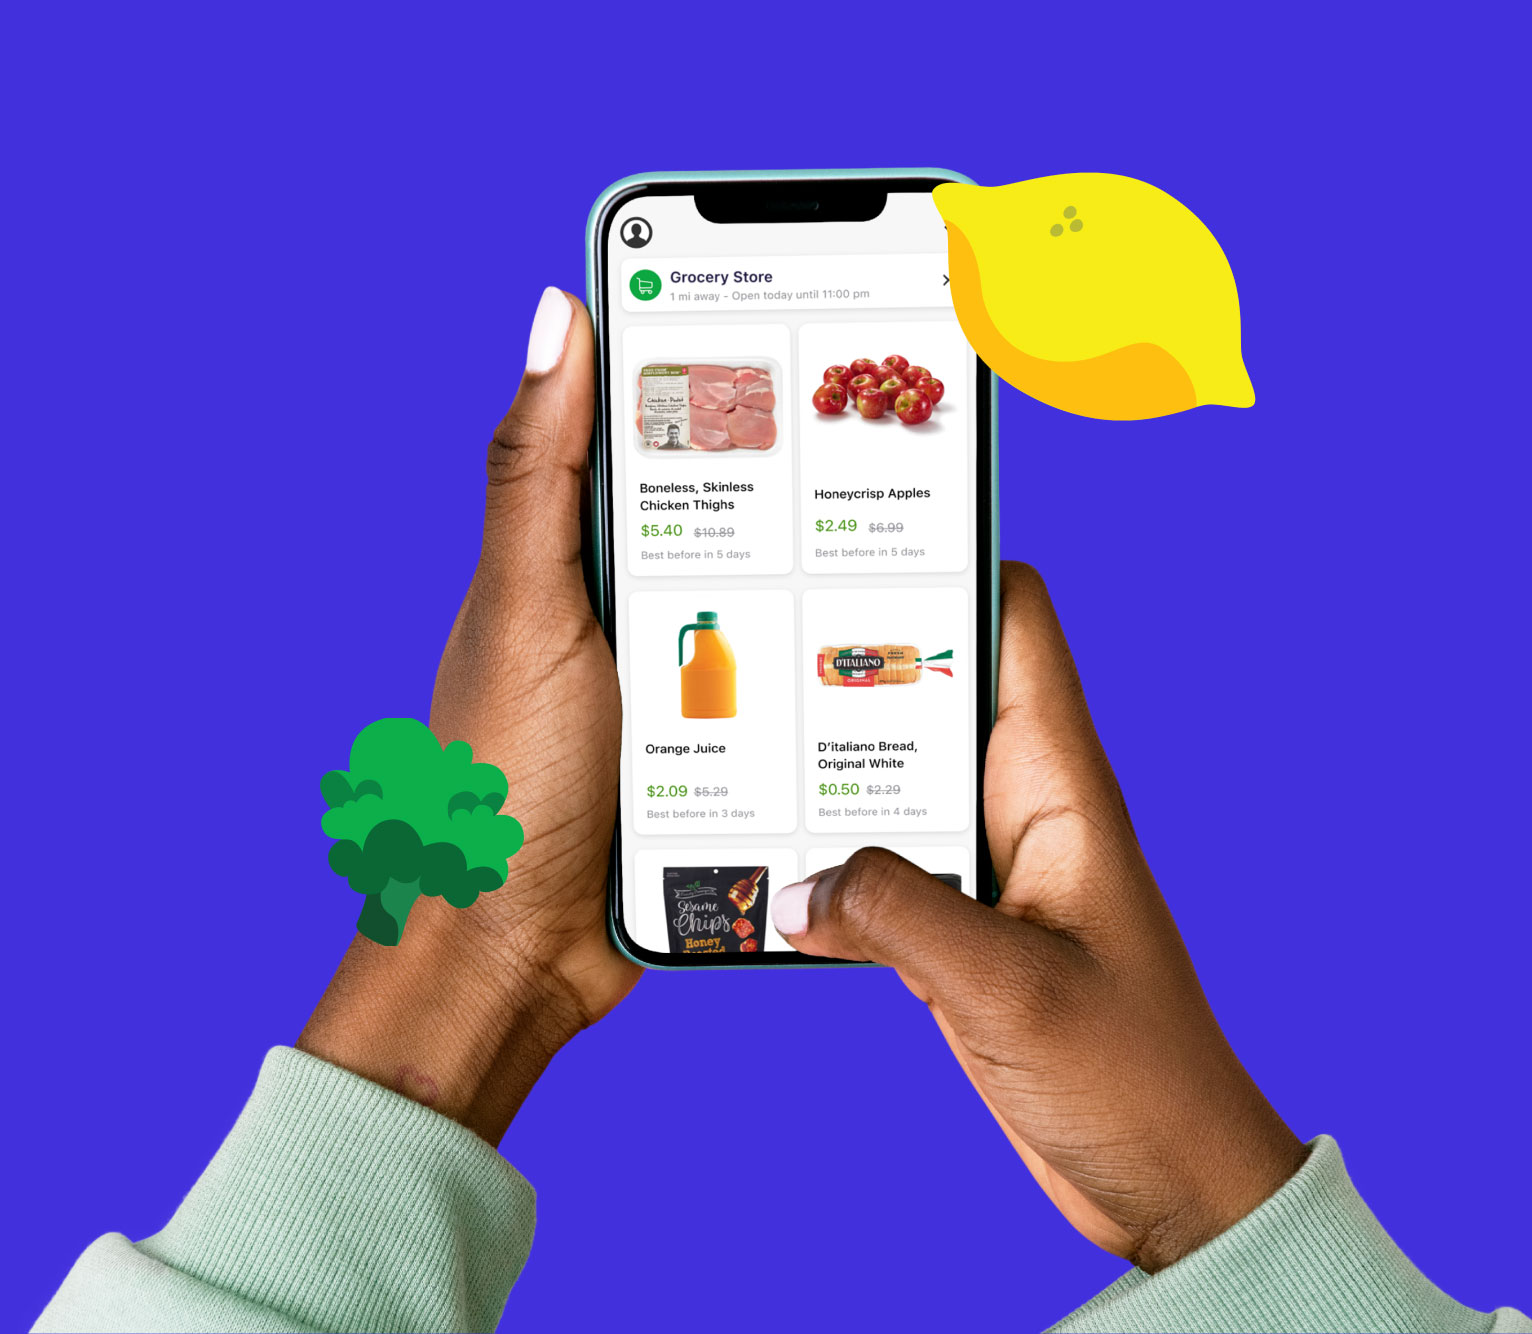 Hand holding phone with Flashfood app showing boneless chicken breast discounted to $4.20 from original $8.54 price